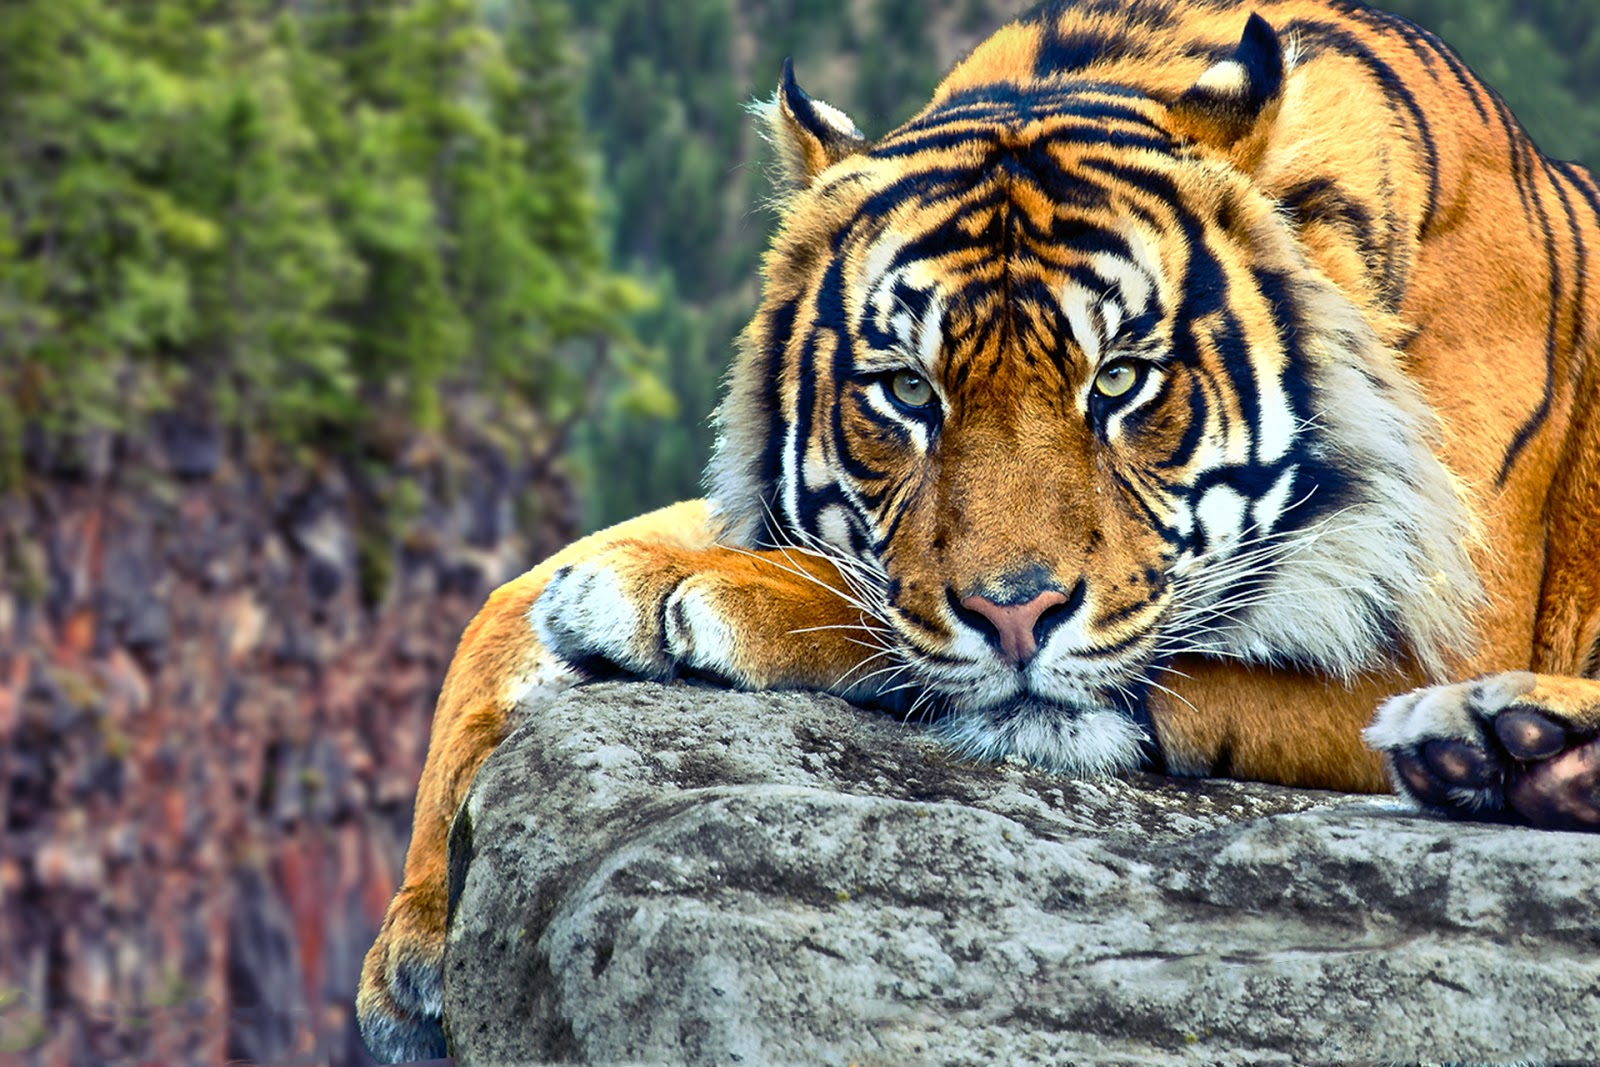 Best 32 Tiger Backgrounds For Computer On Hipwallpaper Computer Wallpaper Beautiful Computer Wallpaper And Cute Computer Wallpaper